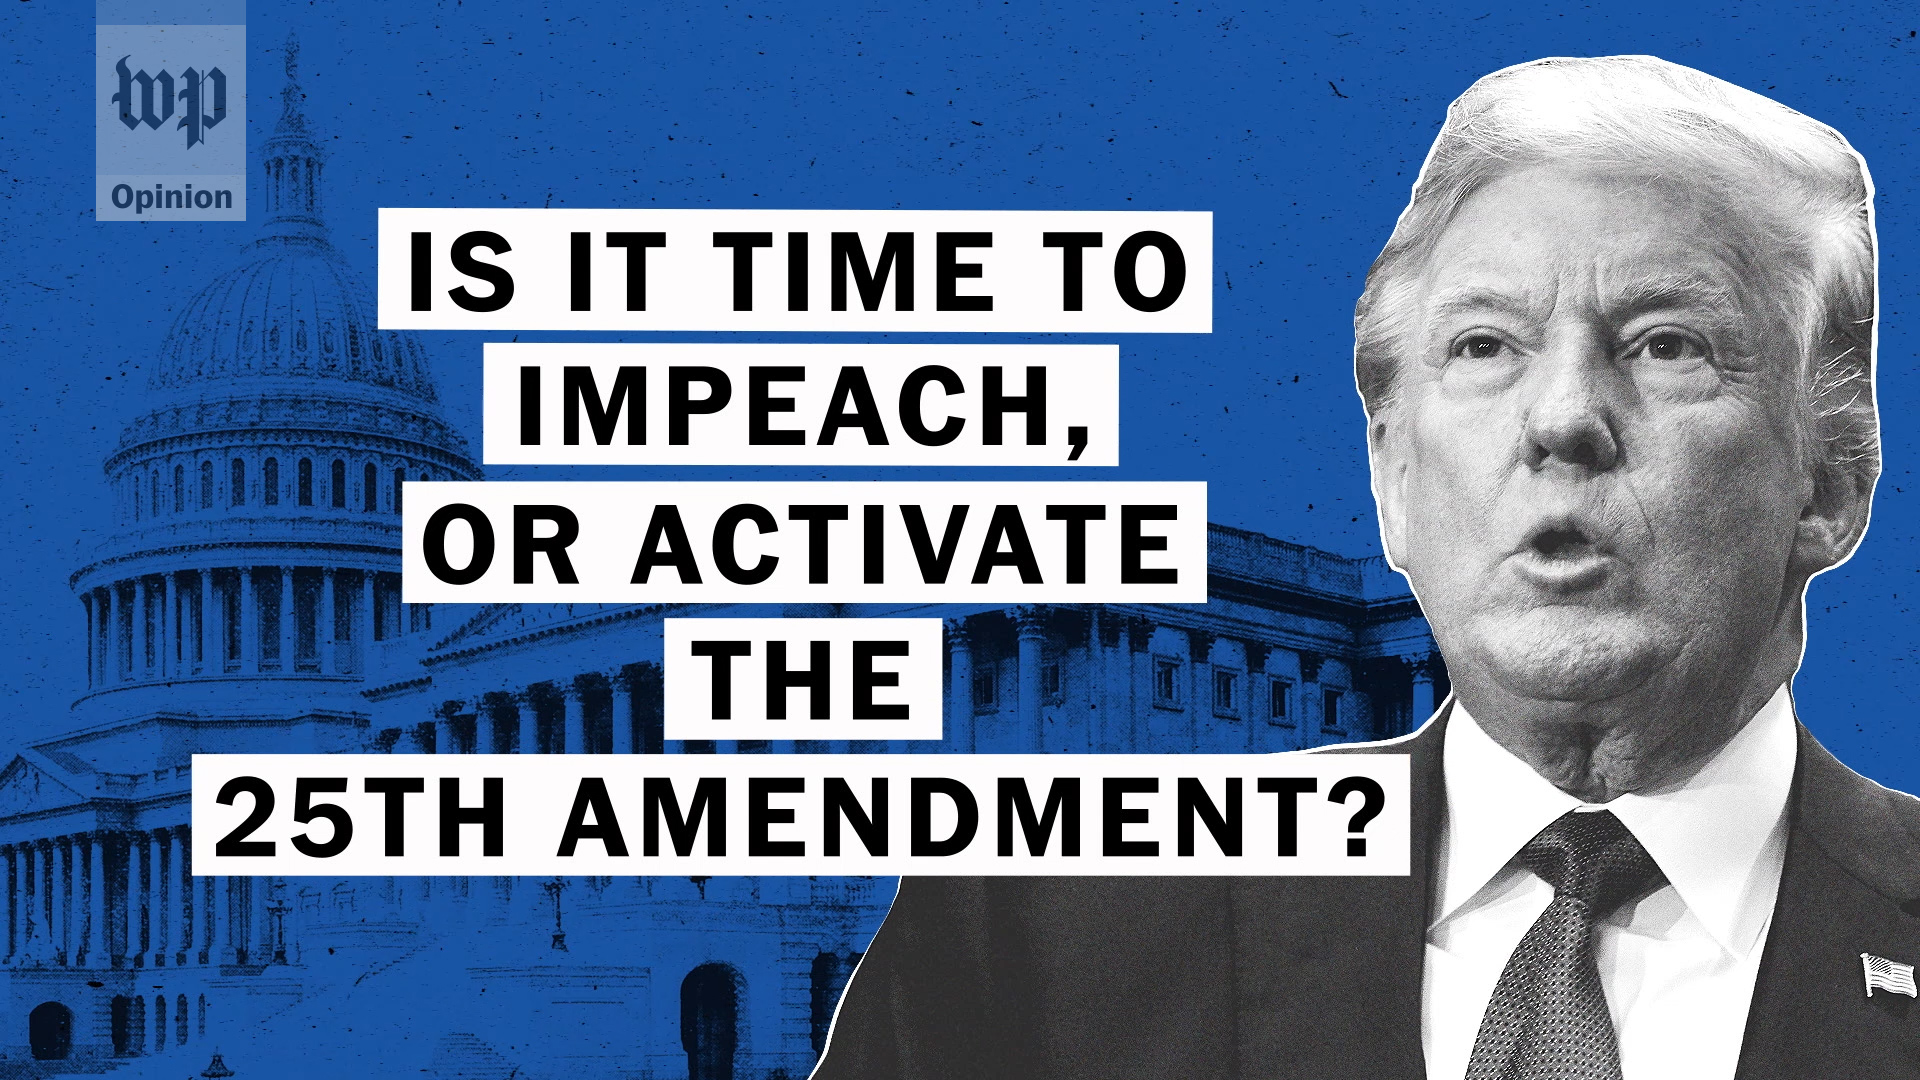 If Trump believes what he's saying, we really do need to deploy the 25th Amendment